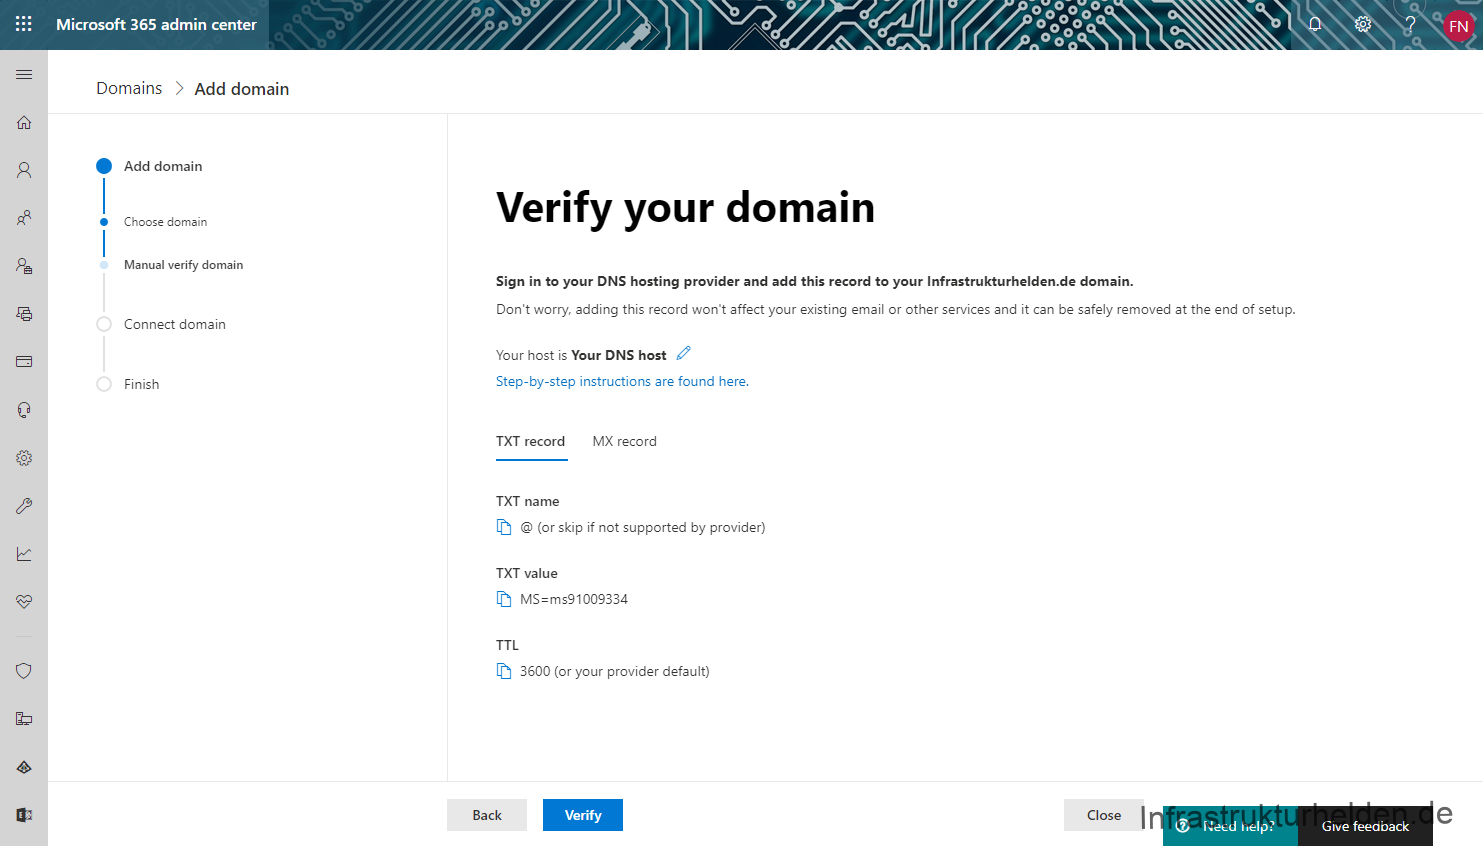 Microsoft 365 admin center  Domains > Add domain > Manual verify domain > Connect domain